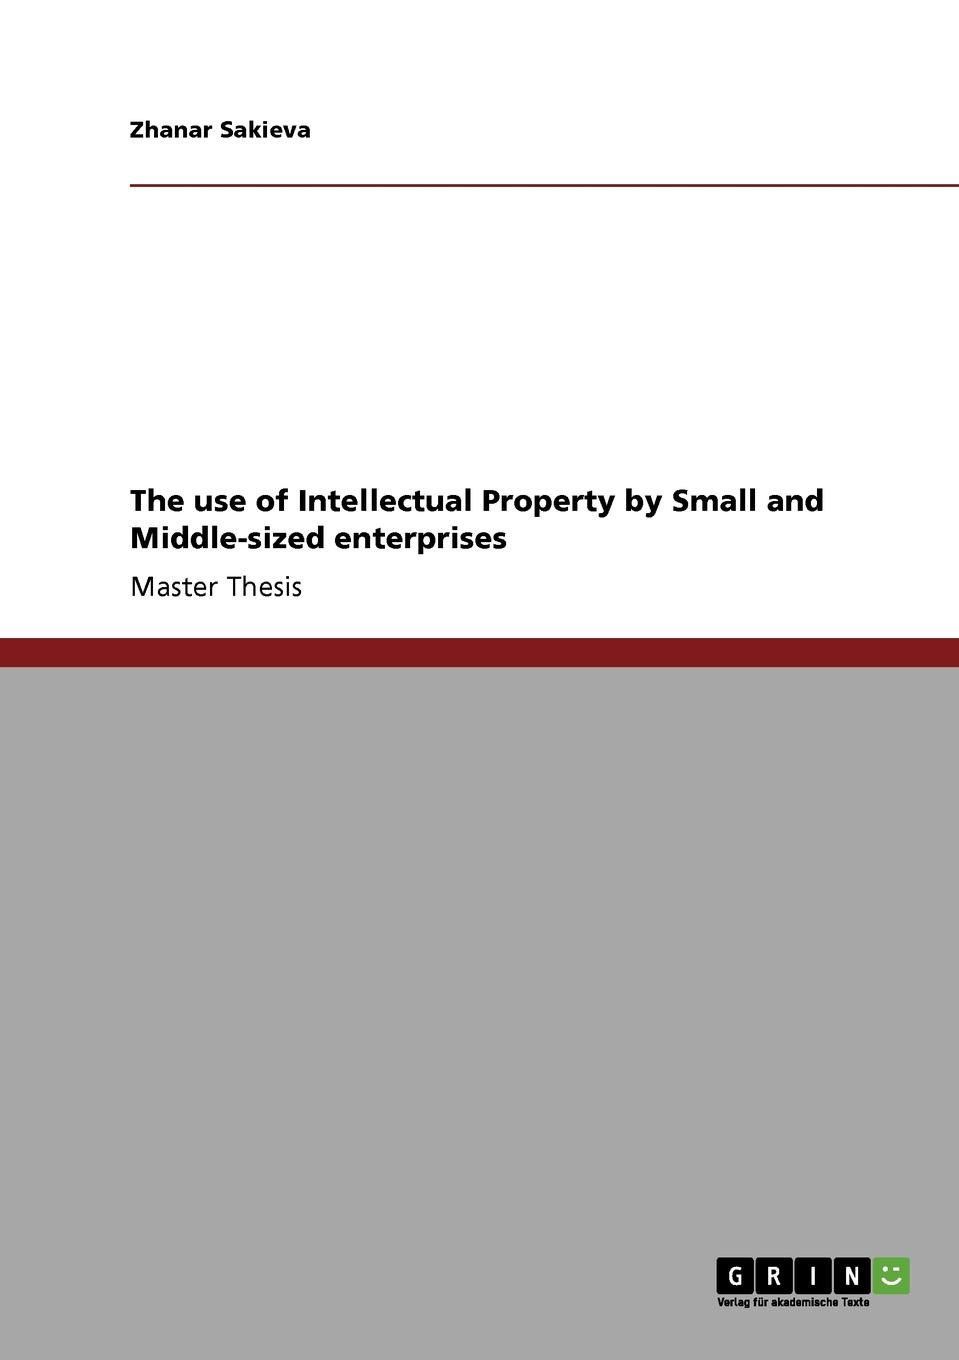 Zhanar Sakieva The use of Intellectual Property by Small and Middle-sized enterprises intellectual property and innovation management in small firms